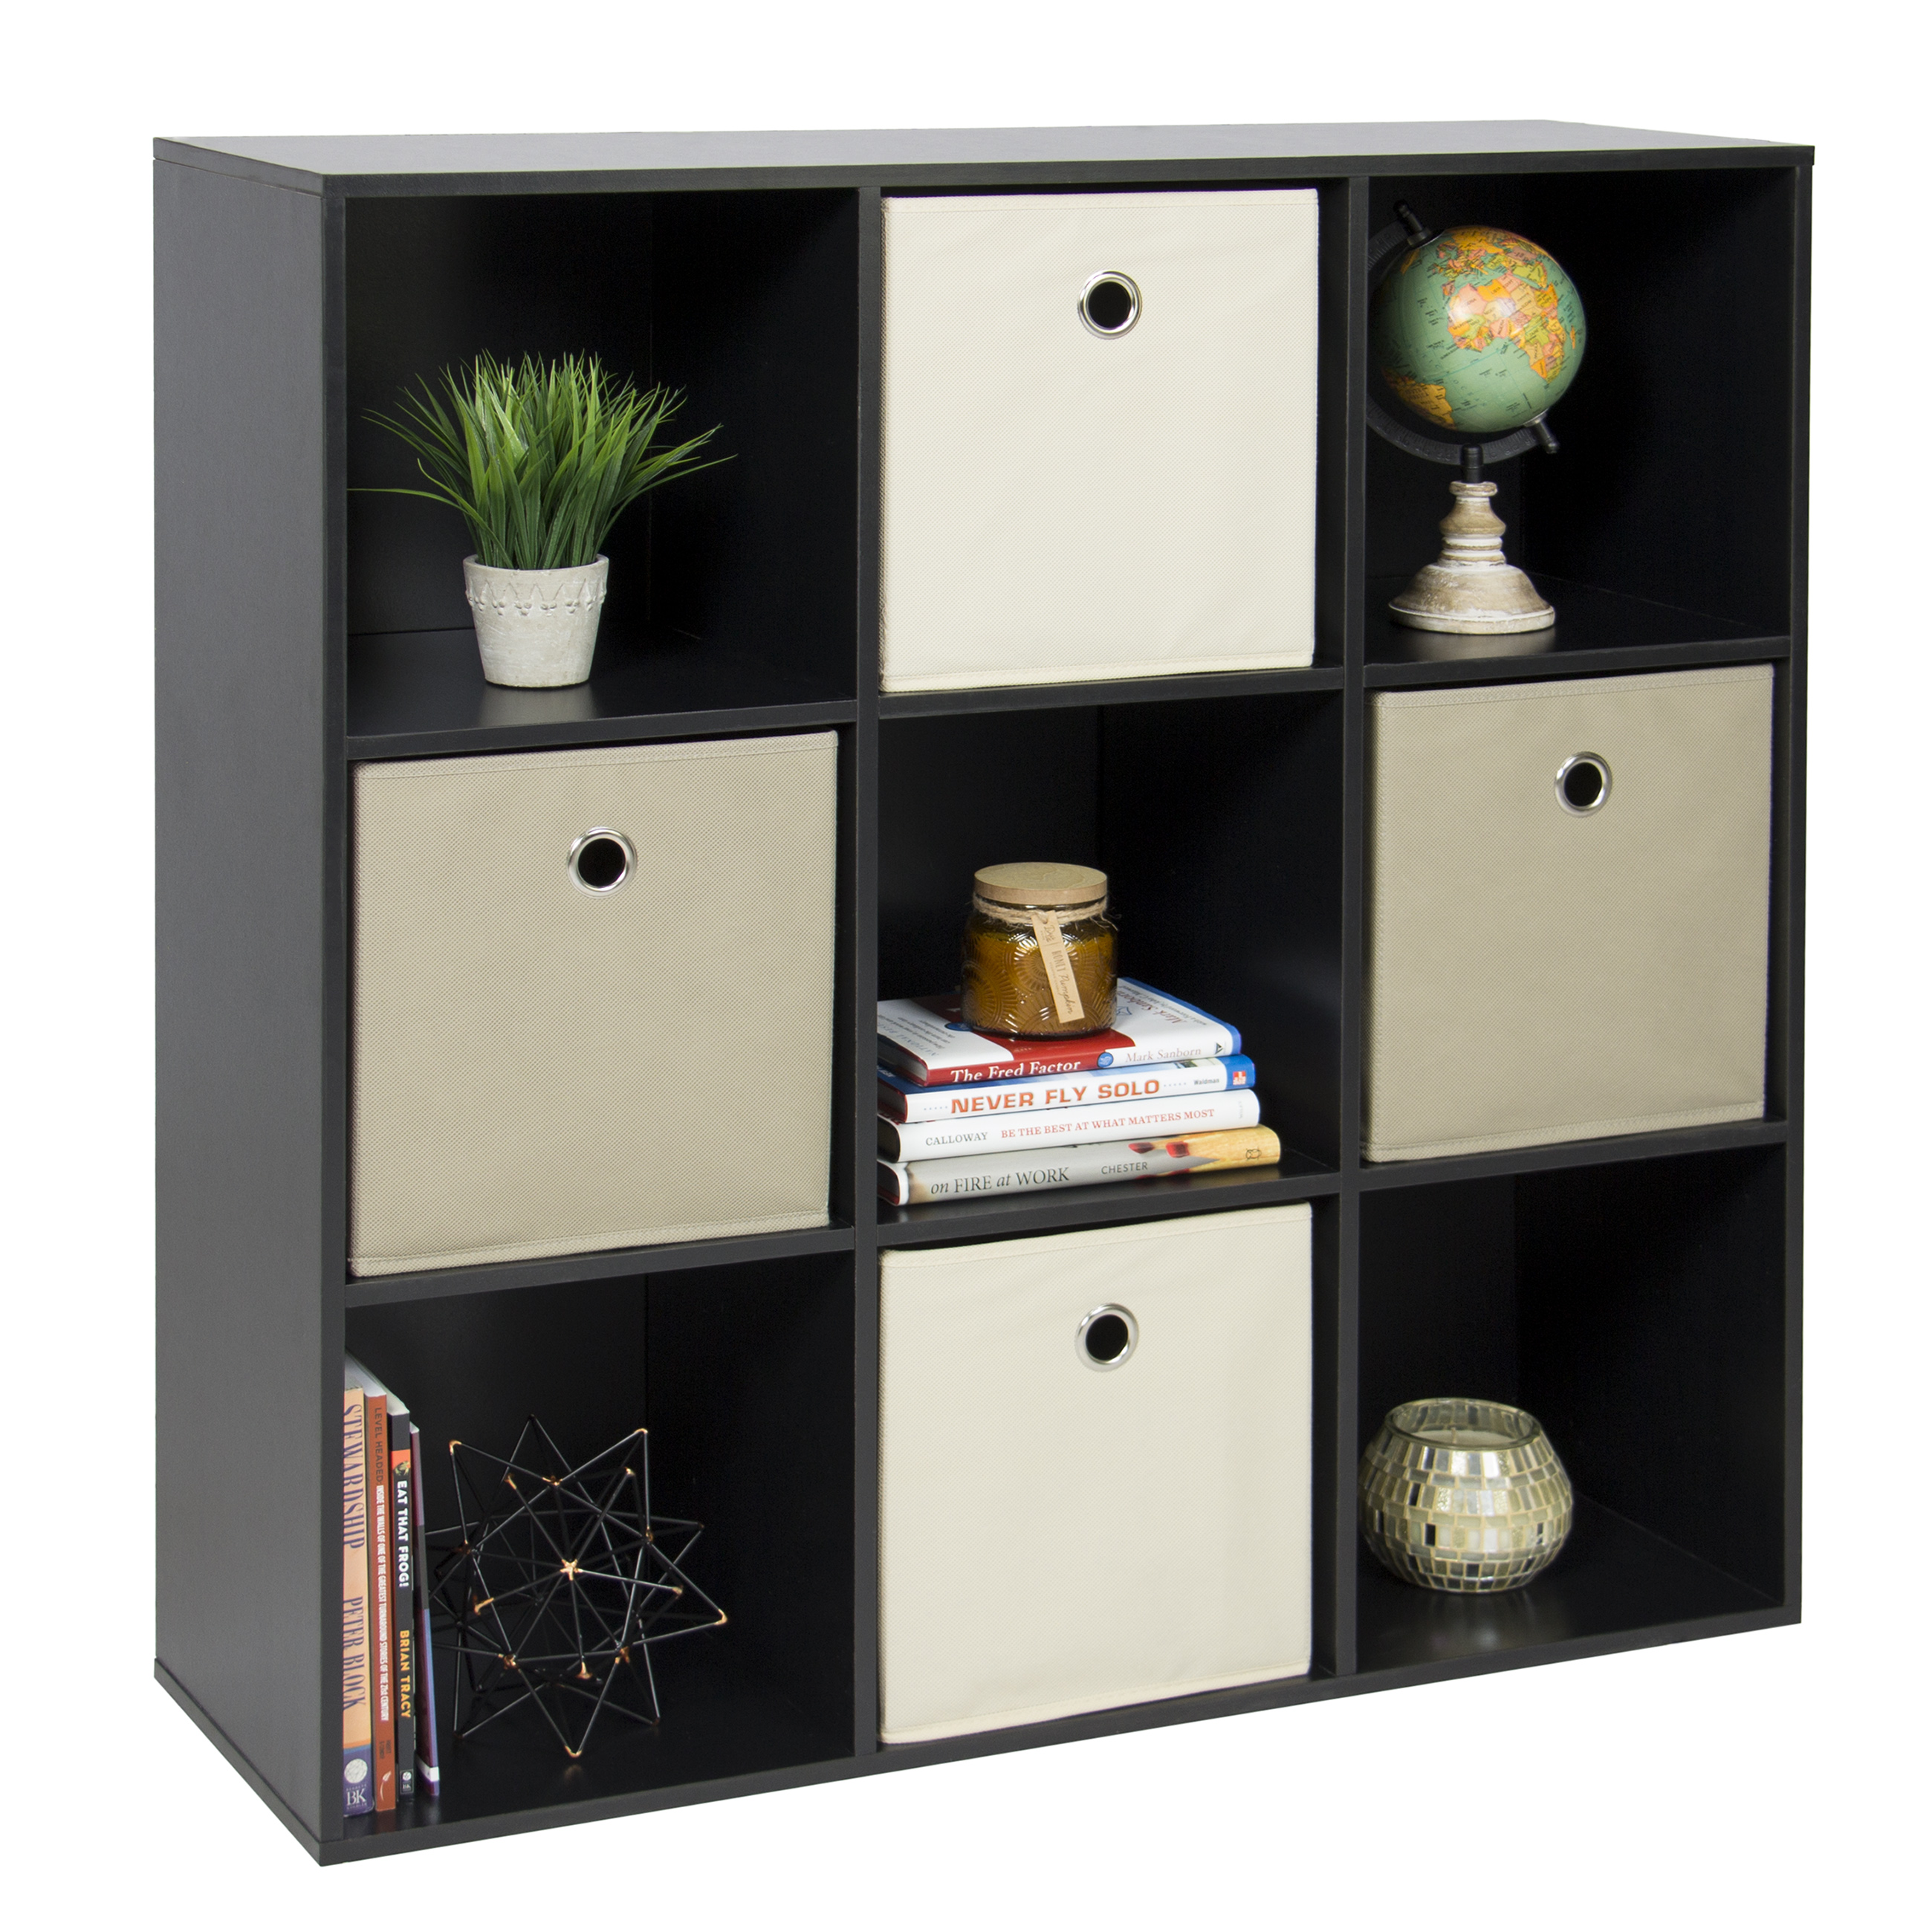 Best Choice Products 9-Cube Bookshelf Display Storage Organizer w/ Removable Back Panels (Black)